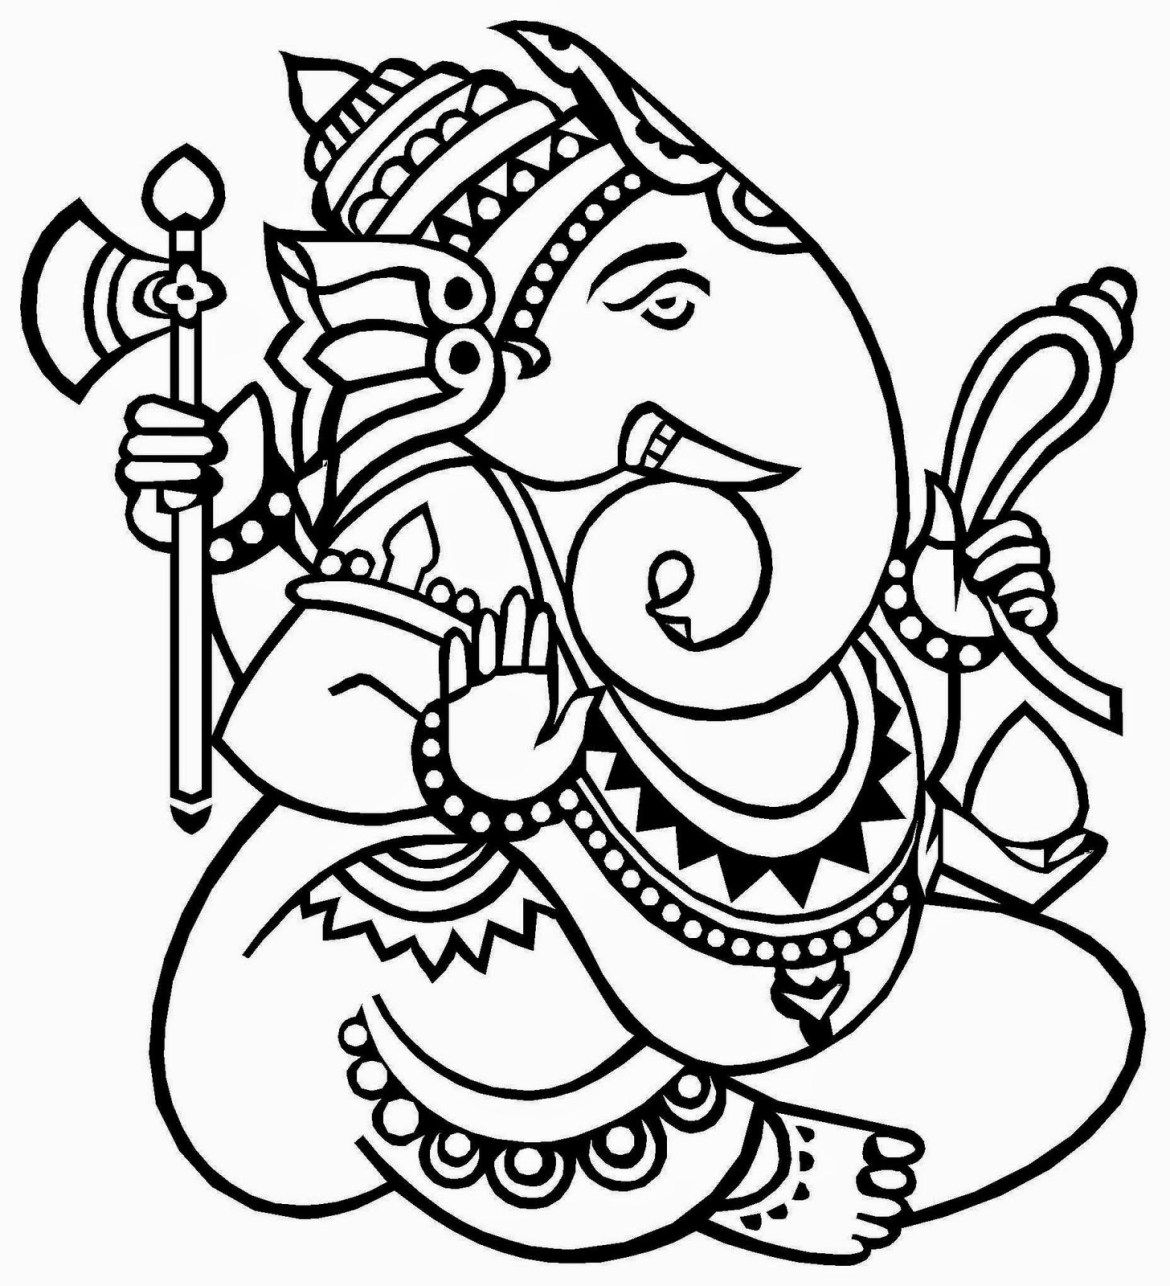 Lord Ganesha Free Coloring Pages For Kids | Coloring Pages